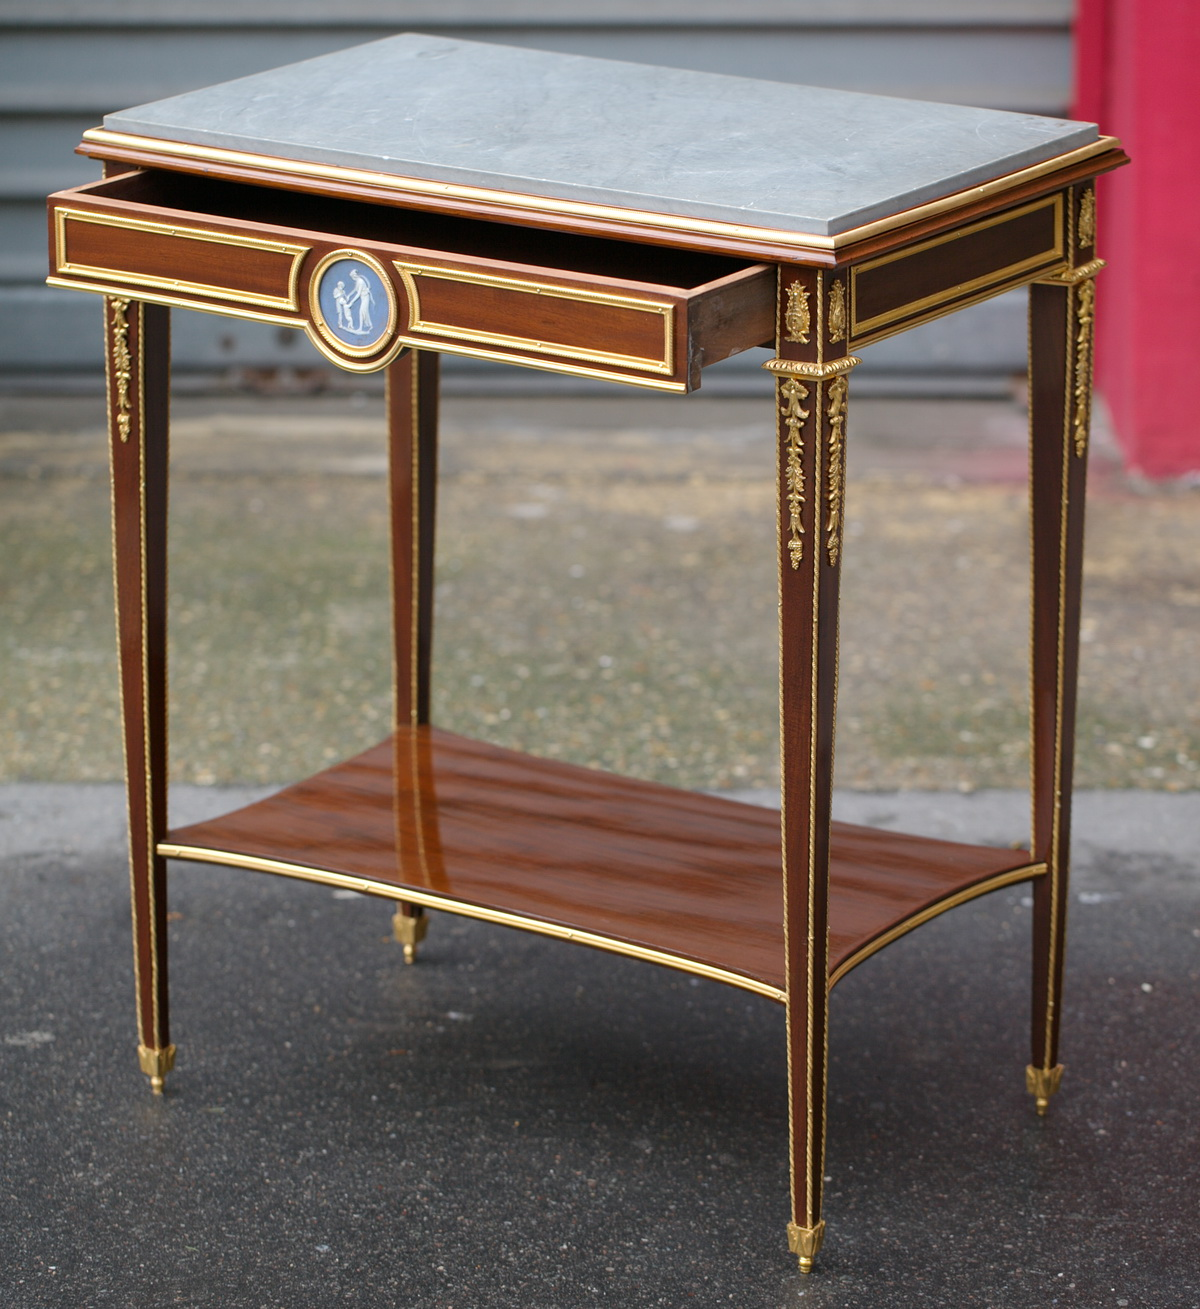 Petite table de salon circa 1880 for Table de salon petite taille